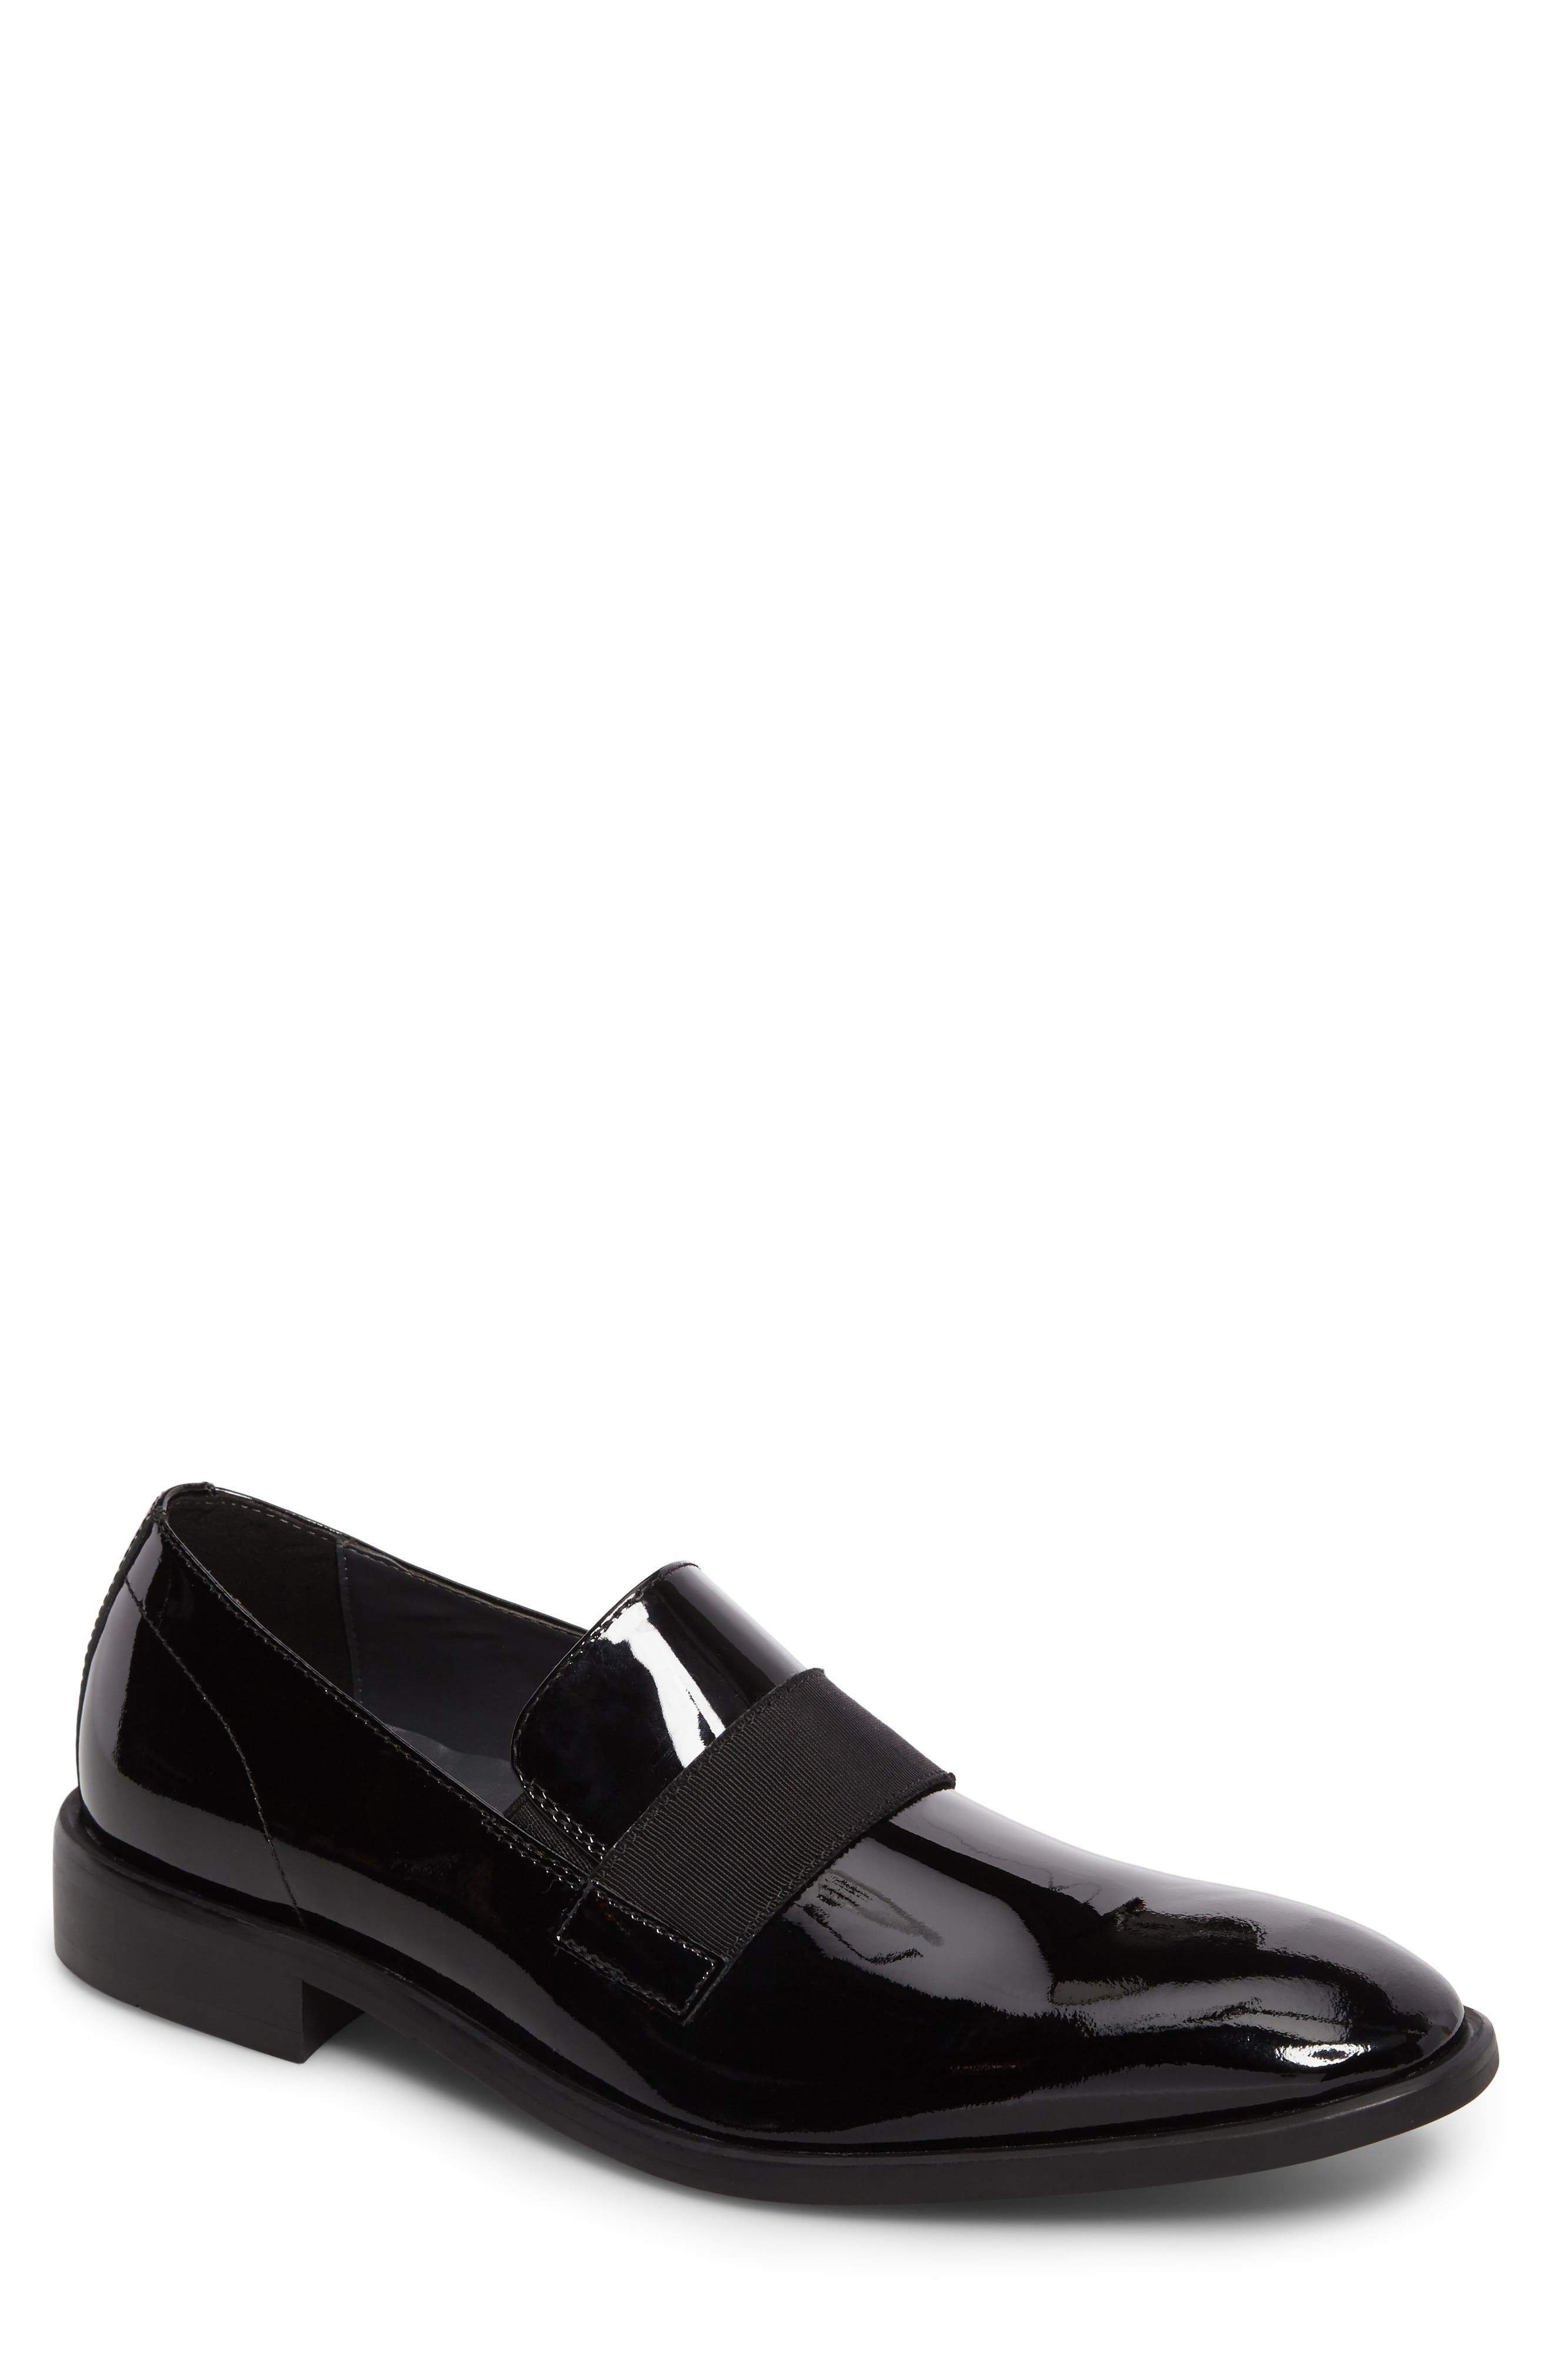 Tulsa Venetian Loafer,                             Main thumbnail 1, color,                             BLACK PATENT LEATHER